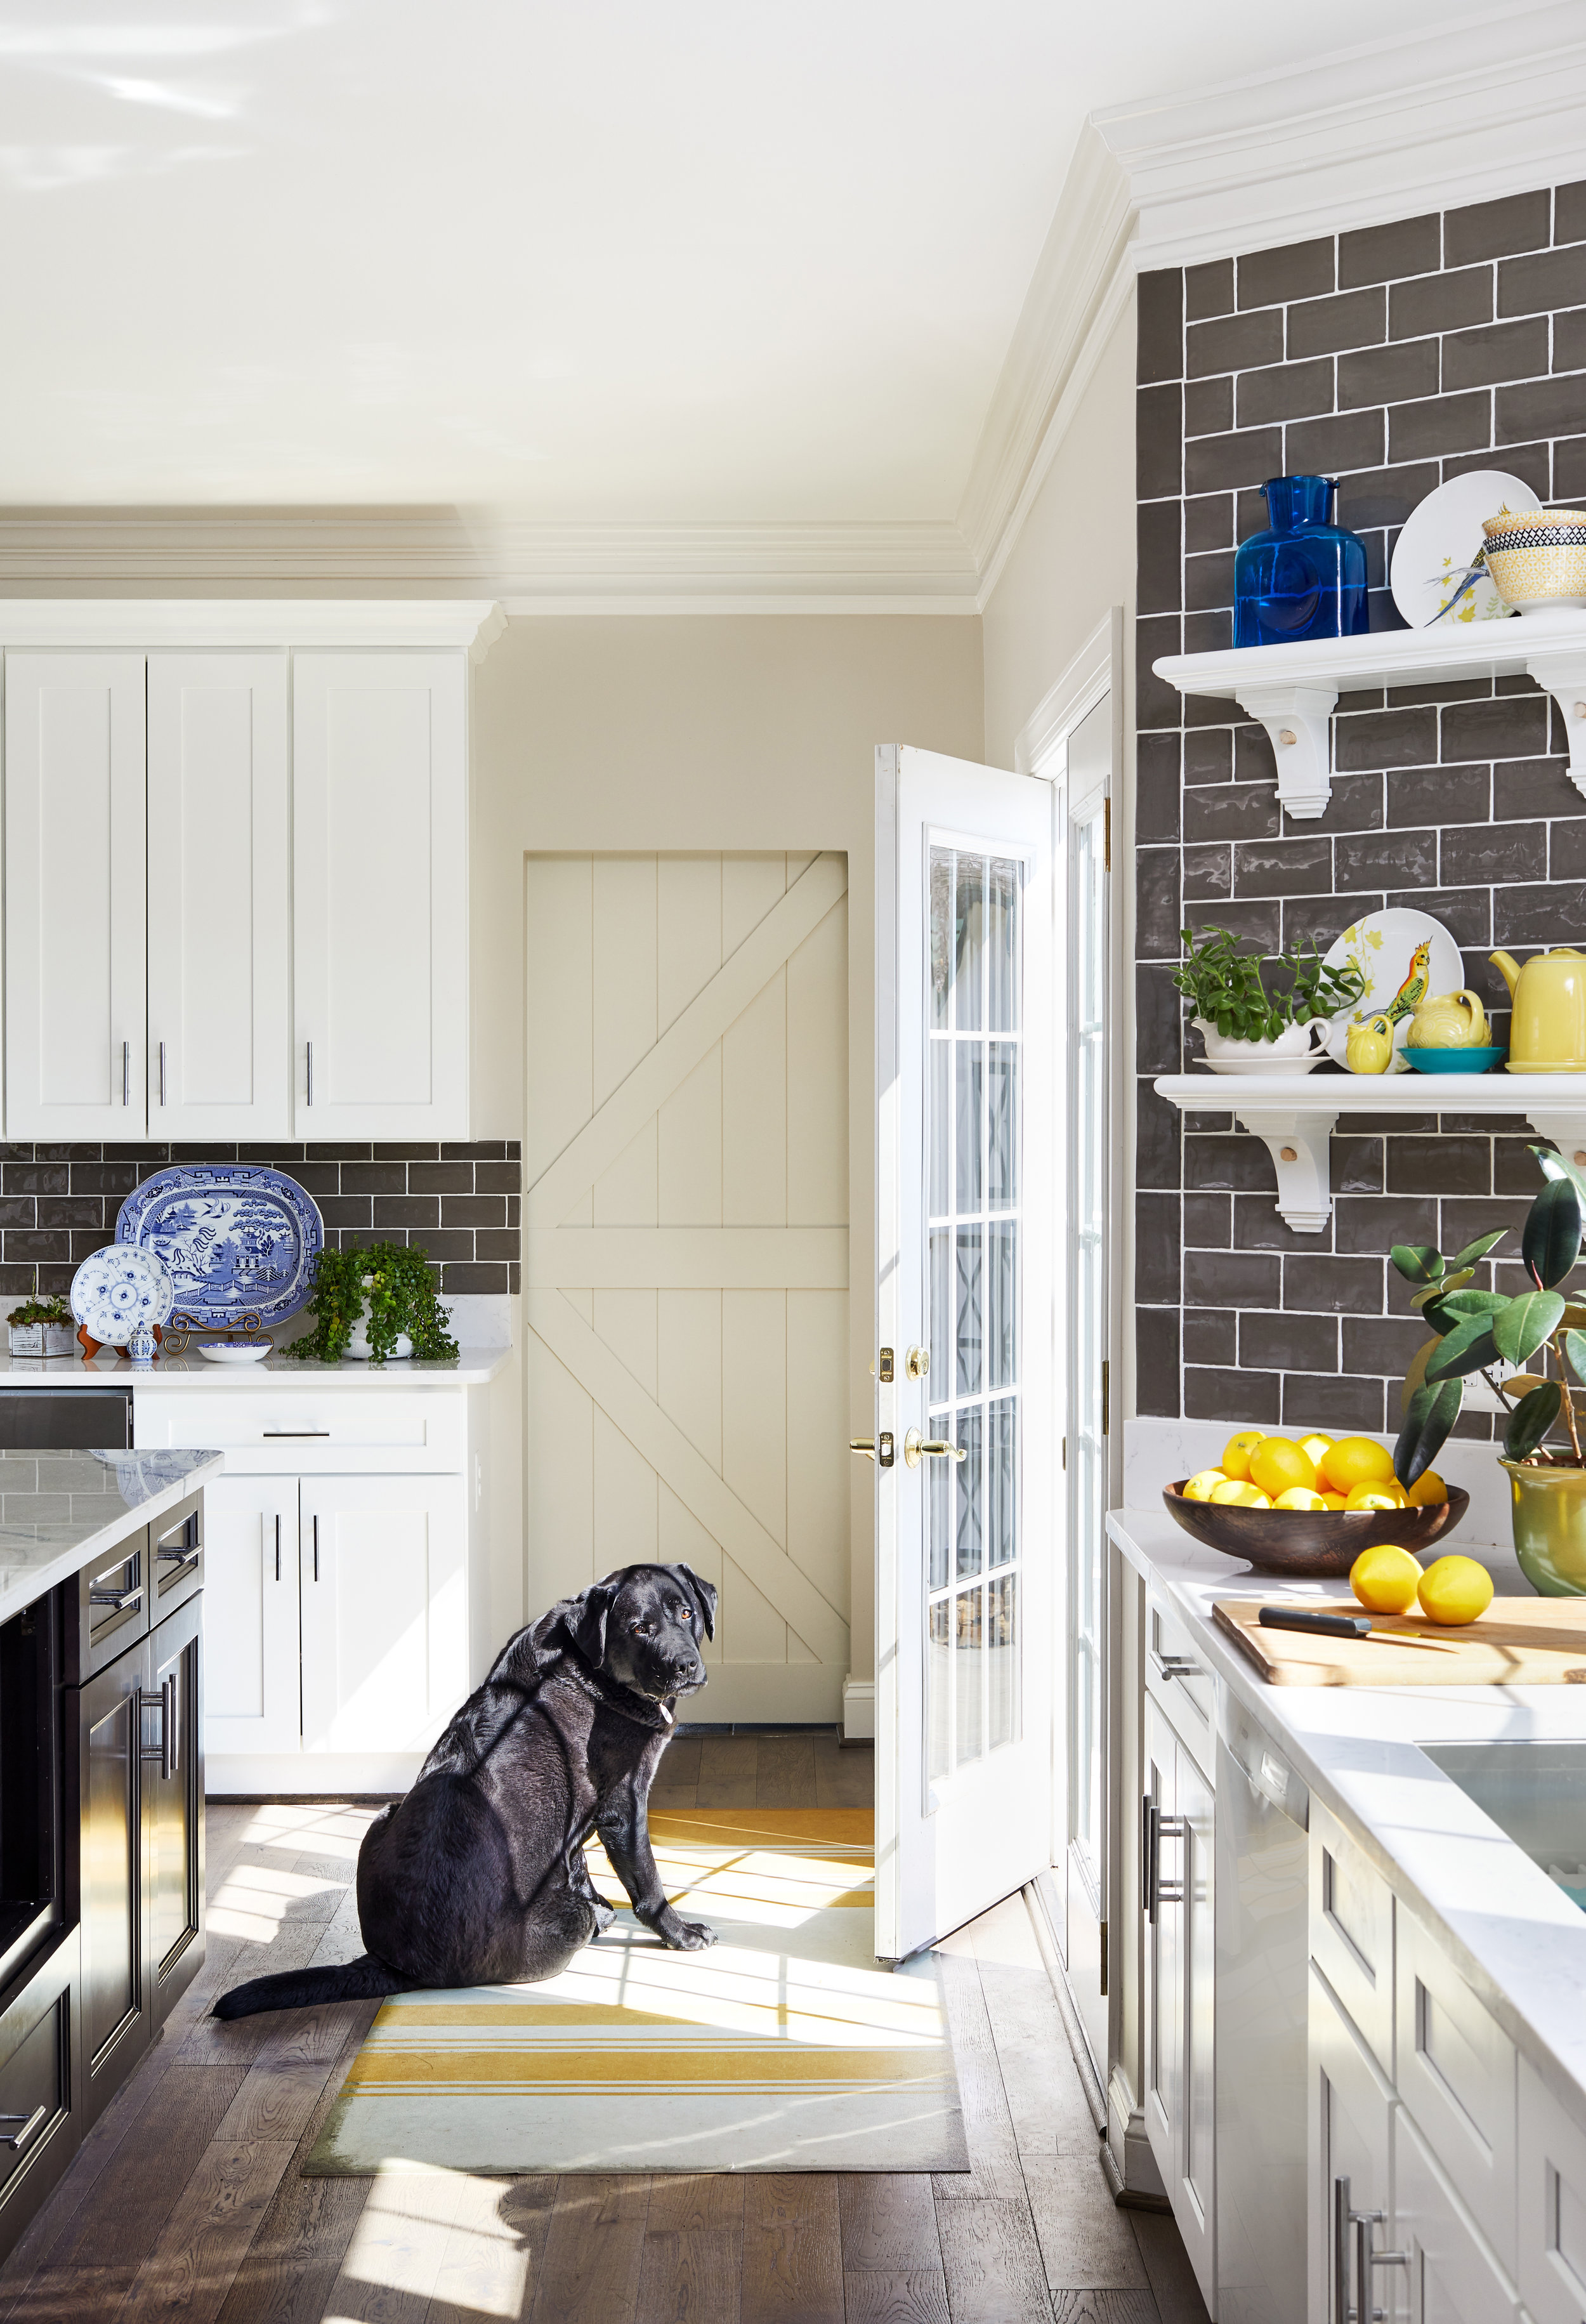 Fresh modern farmhouse country kitchen renovation. Gray and white kitchen with pops of yellow. Best tile for a backsplash. Vintage inspired floor mats make in America by Spicher & Co. Sunny glass back door off kitchen. Marble countertops. Photo by Stacy Zarin Goldberg.